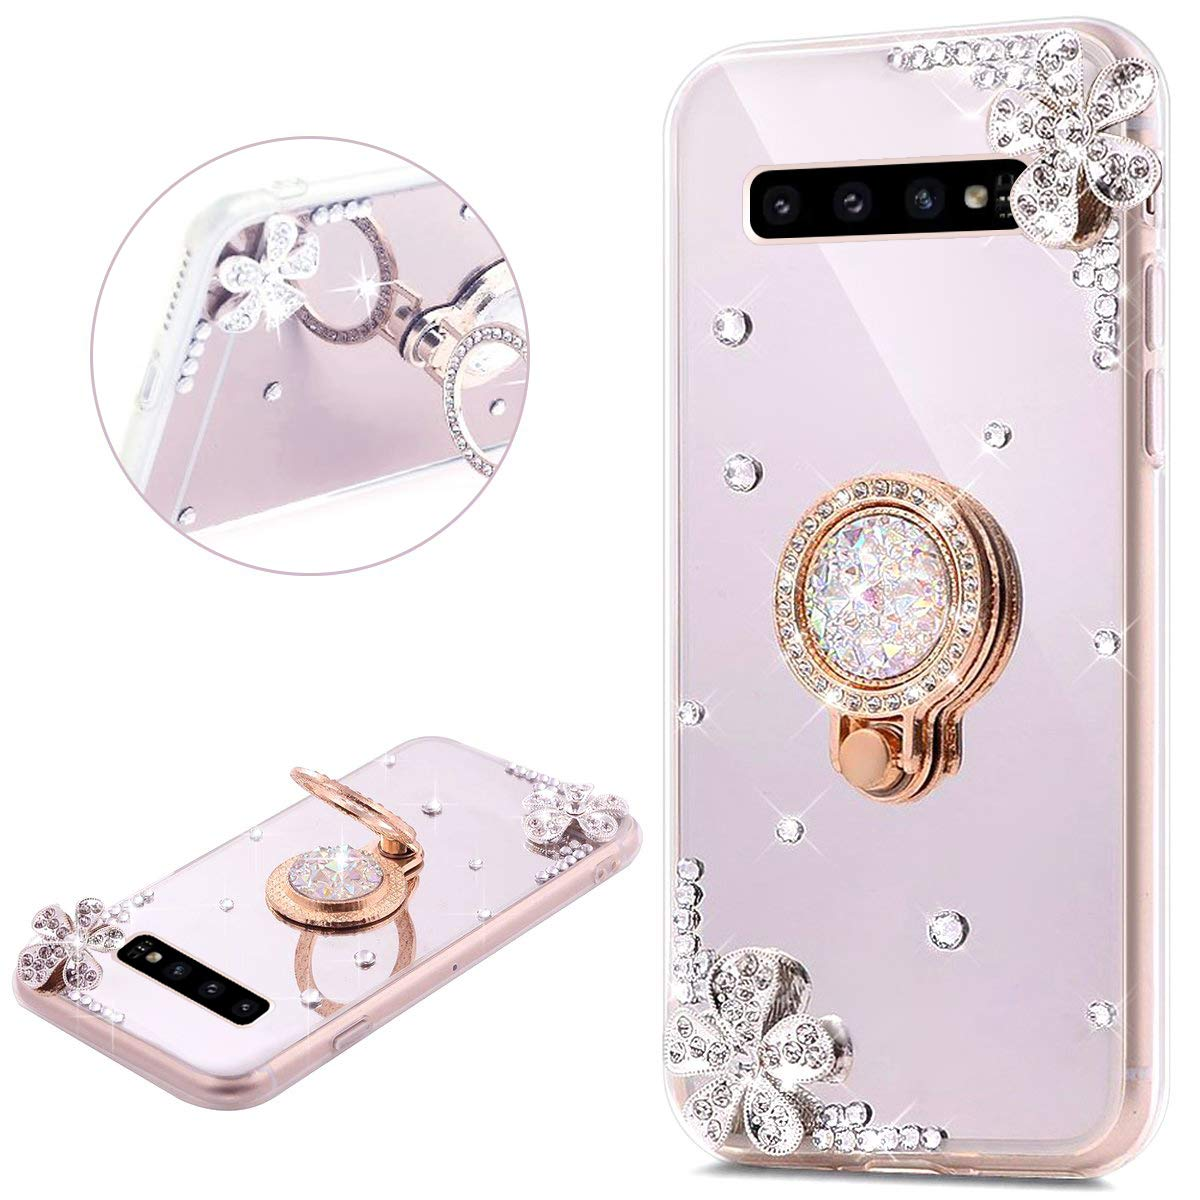 PHEZEN Compatible with Samsung Galaxy S10 Plus Case Crystal Rhinestone Soft TPU Rubber Bumper Case Bling Diamond Glitter Makeup Mirror Back Case with Ring Stand Holder for Galaxy S10 Plus,Silver